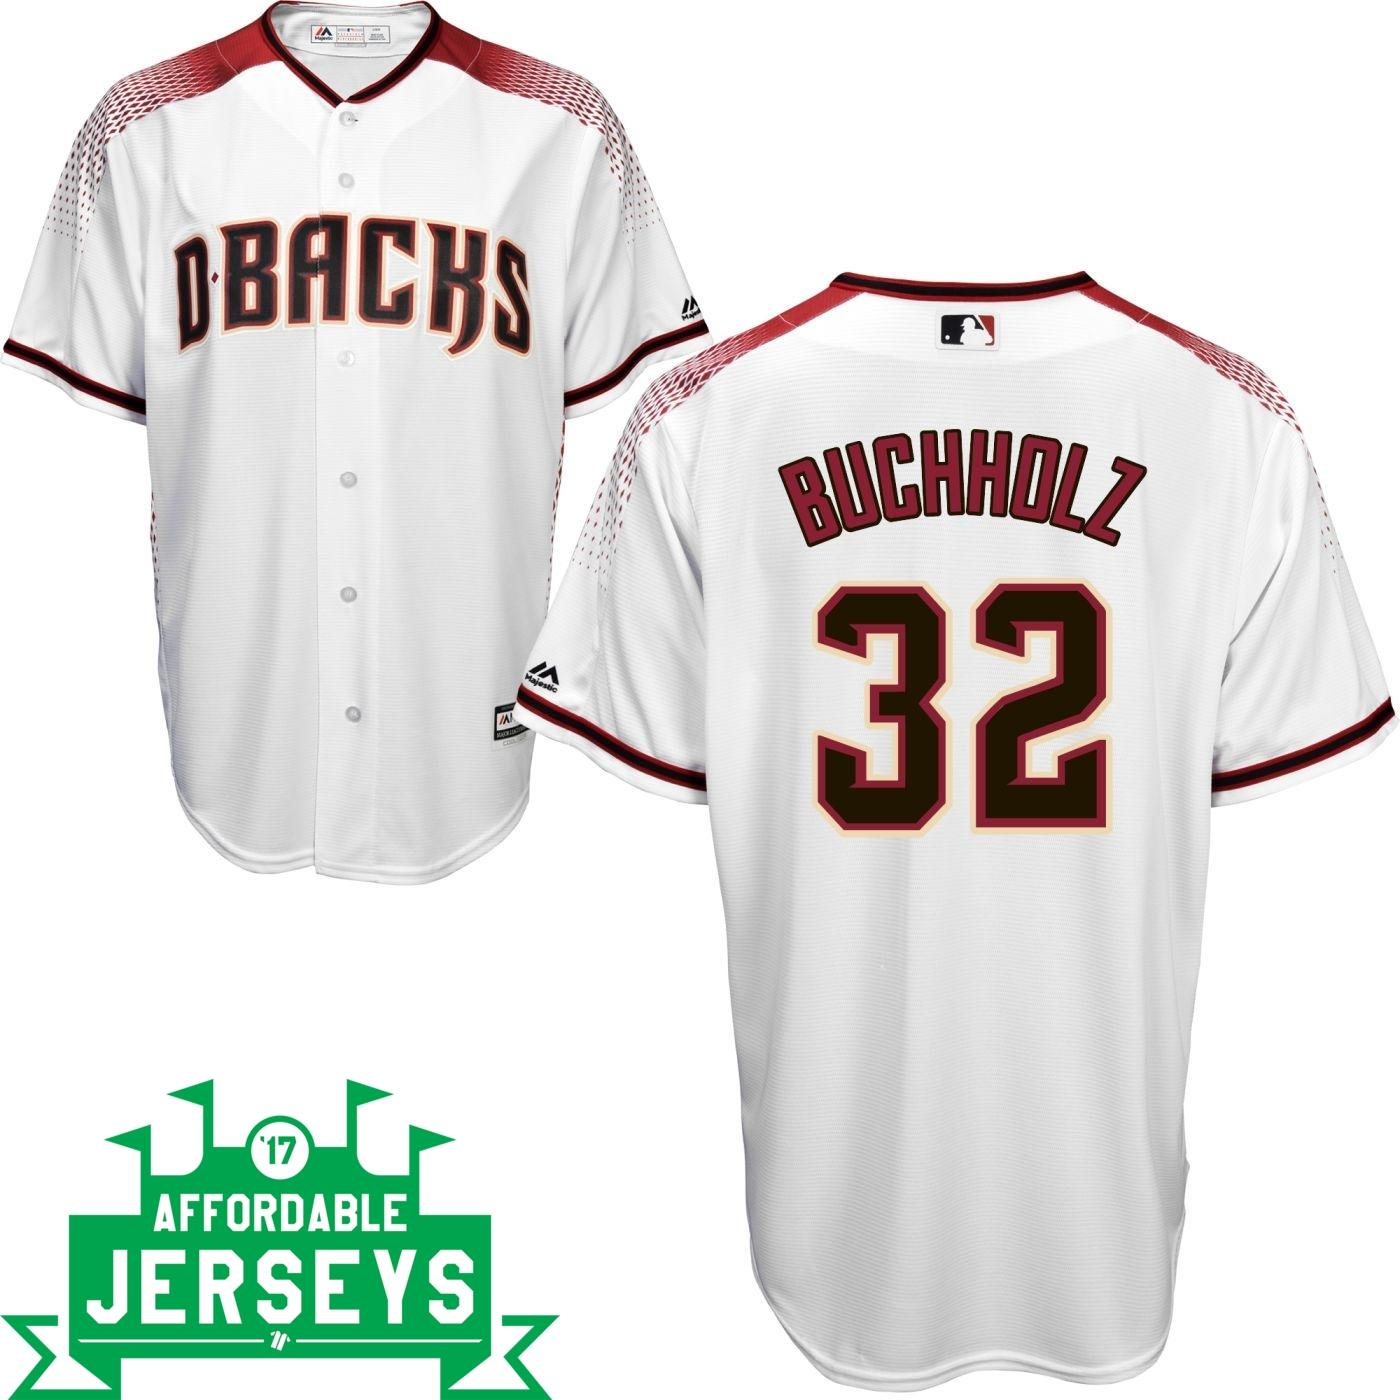 Clay Buchholz Home Cool Base Player Jersey - AffordableJerseys.com